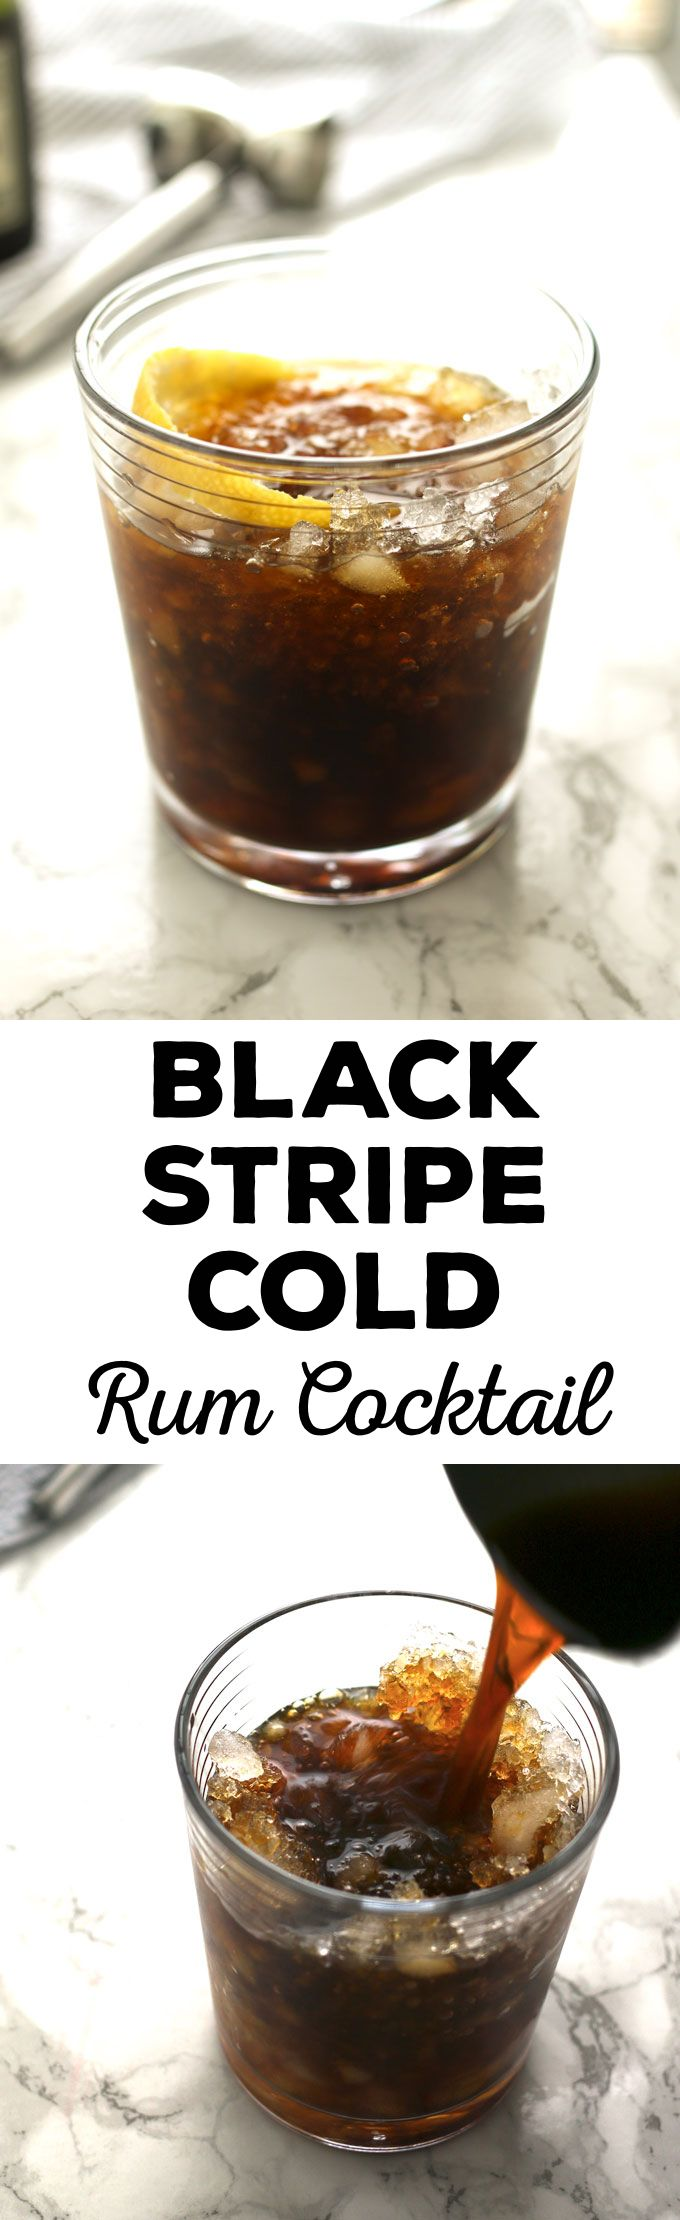 The black stripe cold rum cocktail is a fantastic drink with a surprise ingredient - molasses! If you are looking for something sweeter, add honey; if not, just enjoy the molasses and dark rum all on their own over crushed ice.   honeyandbirch.com